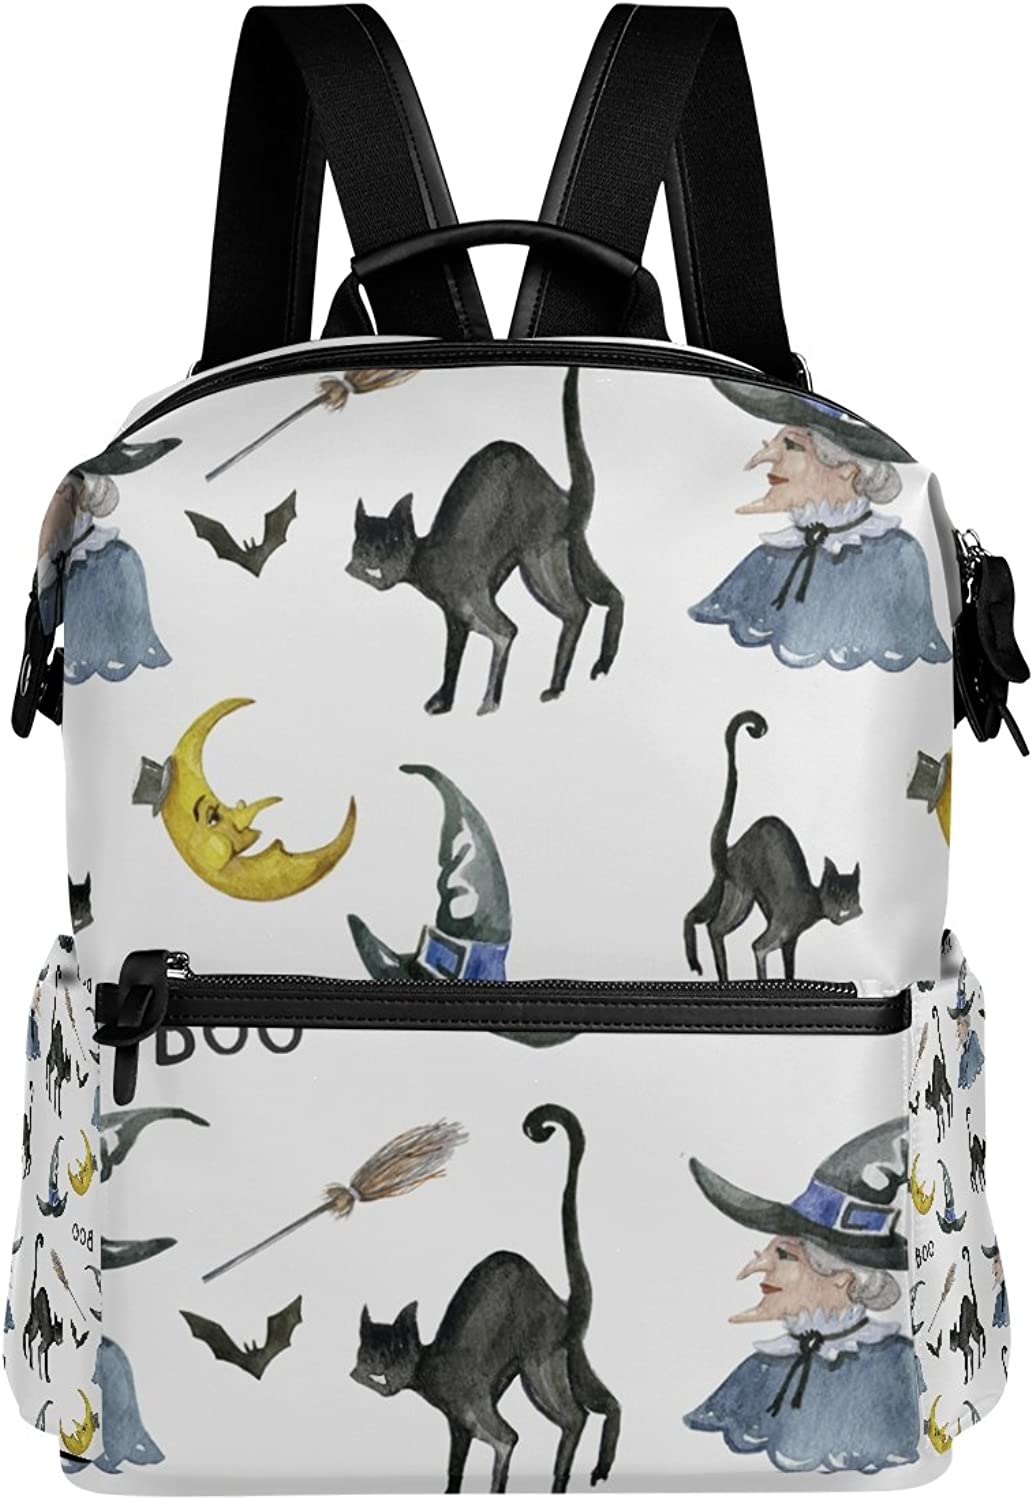 LORVIES Halloween Witch School Rucksack Travel Backpack